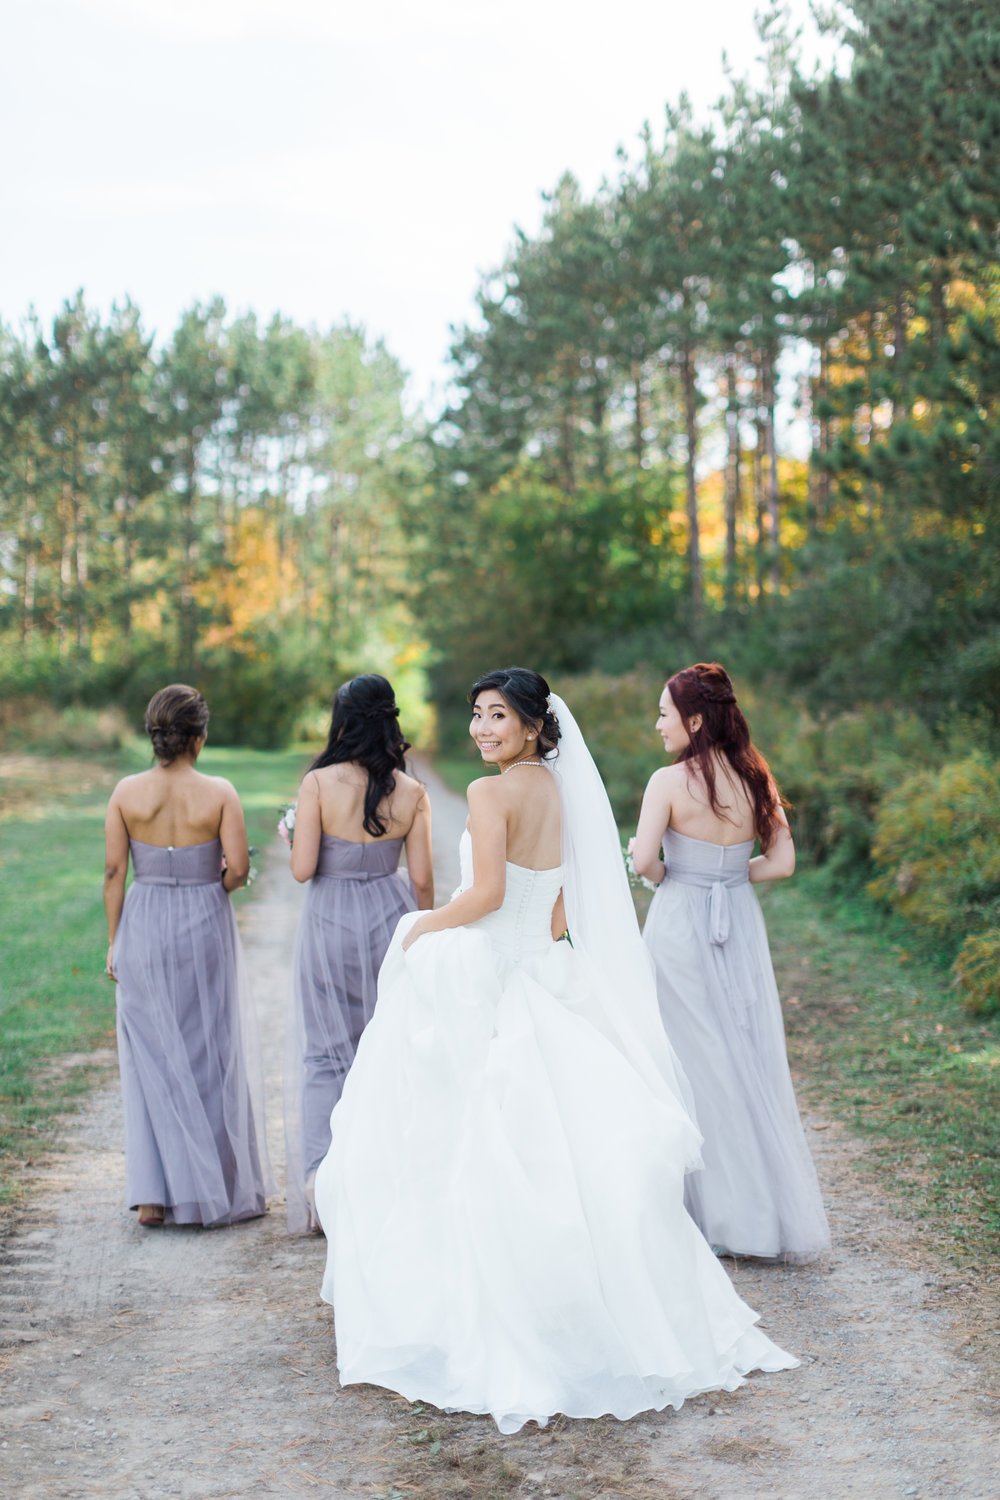 Toronto Fine Art Photographer - Kortright Center Wedding - Bridal Party Portraits-55.jpg